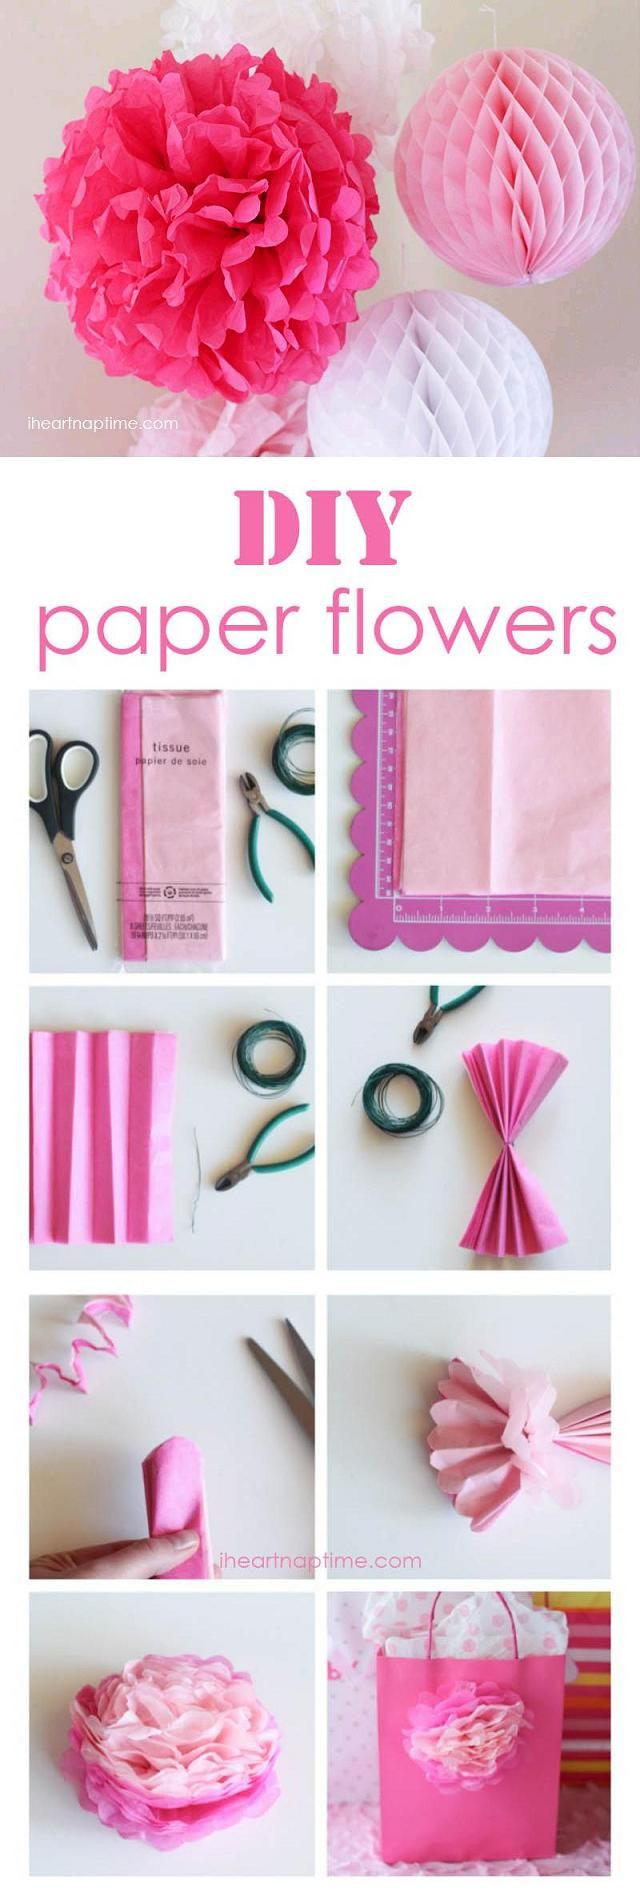 Small flowers for crafts - Best 20 Making Tissue Paper Flowers Ideas On Pinterest Tissue Paper Poms Paper Pom Poms And Tissue Pom Poms